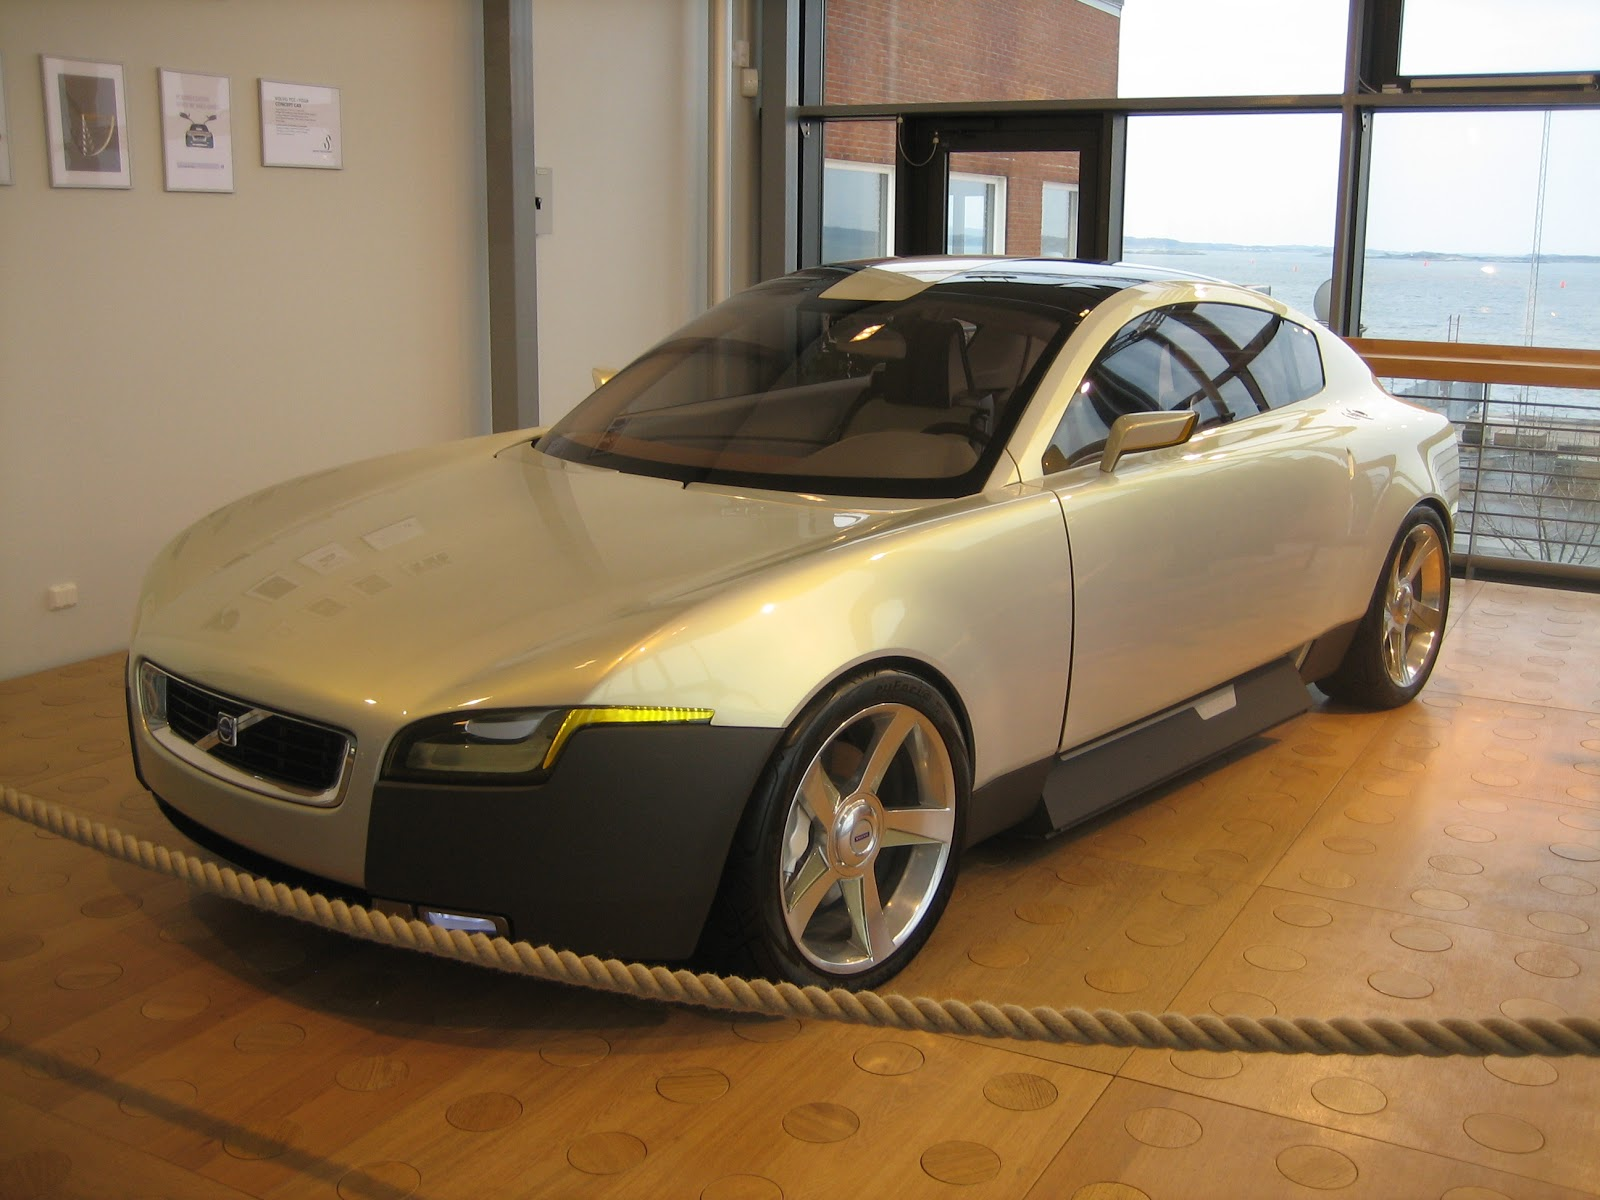 Lehman Volvo Cars: From Concept to...Concept